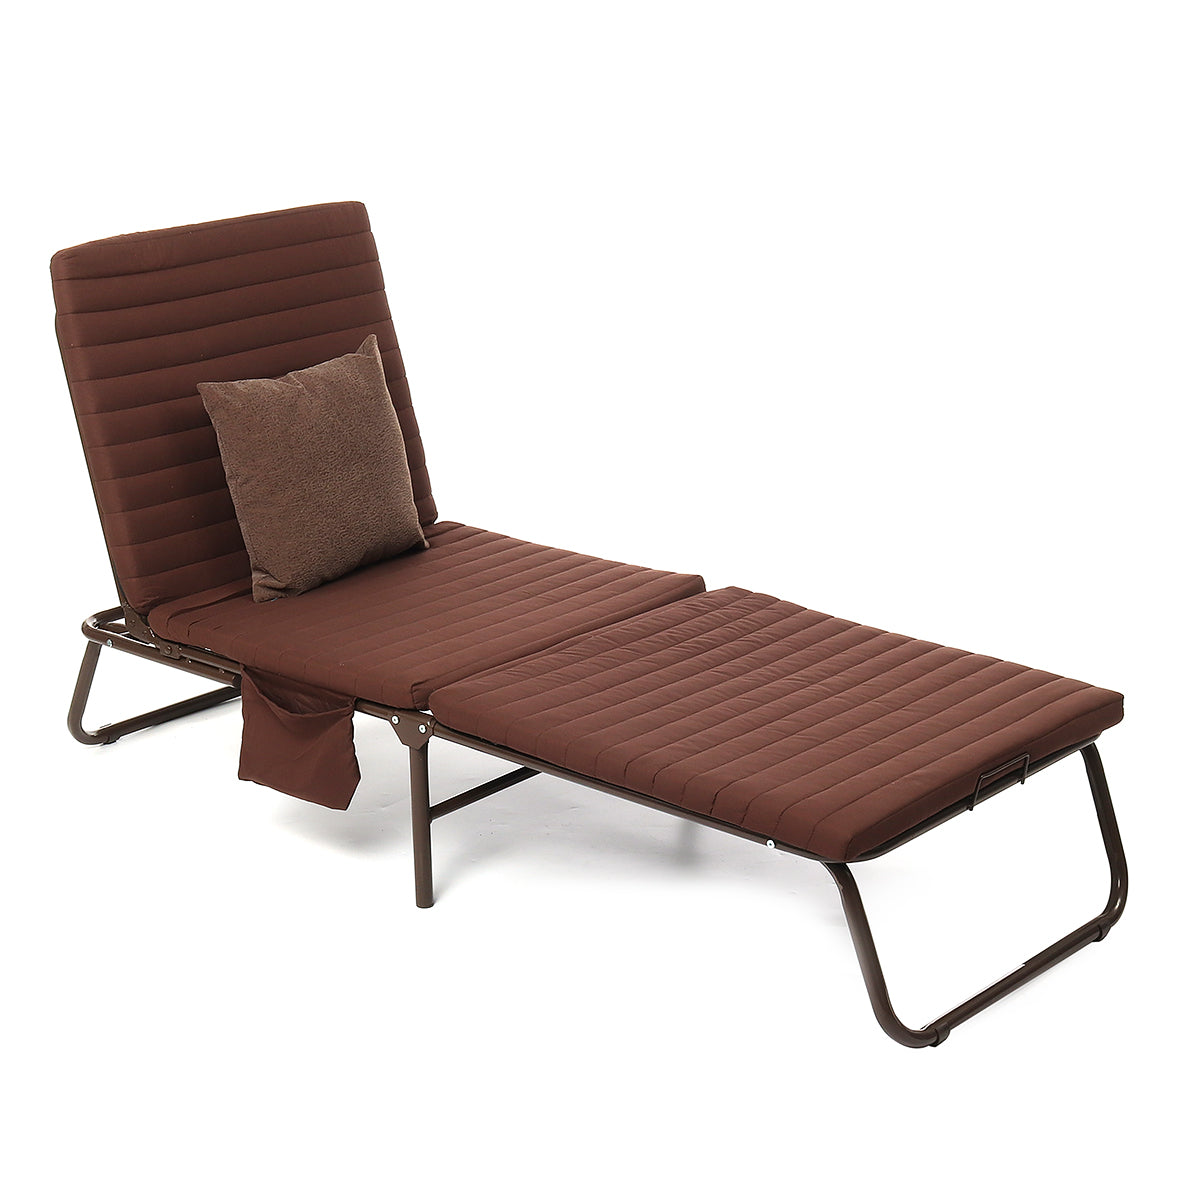 Deck Chair Lounger